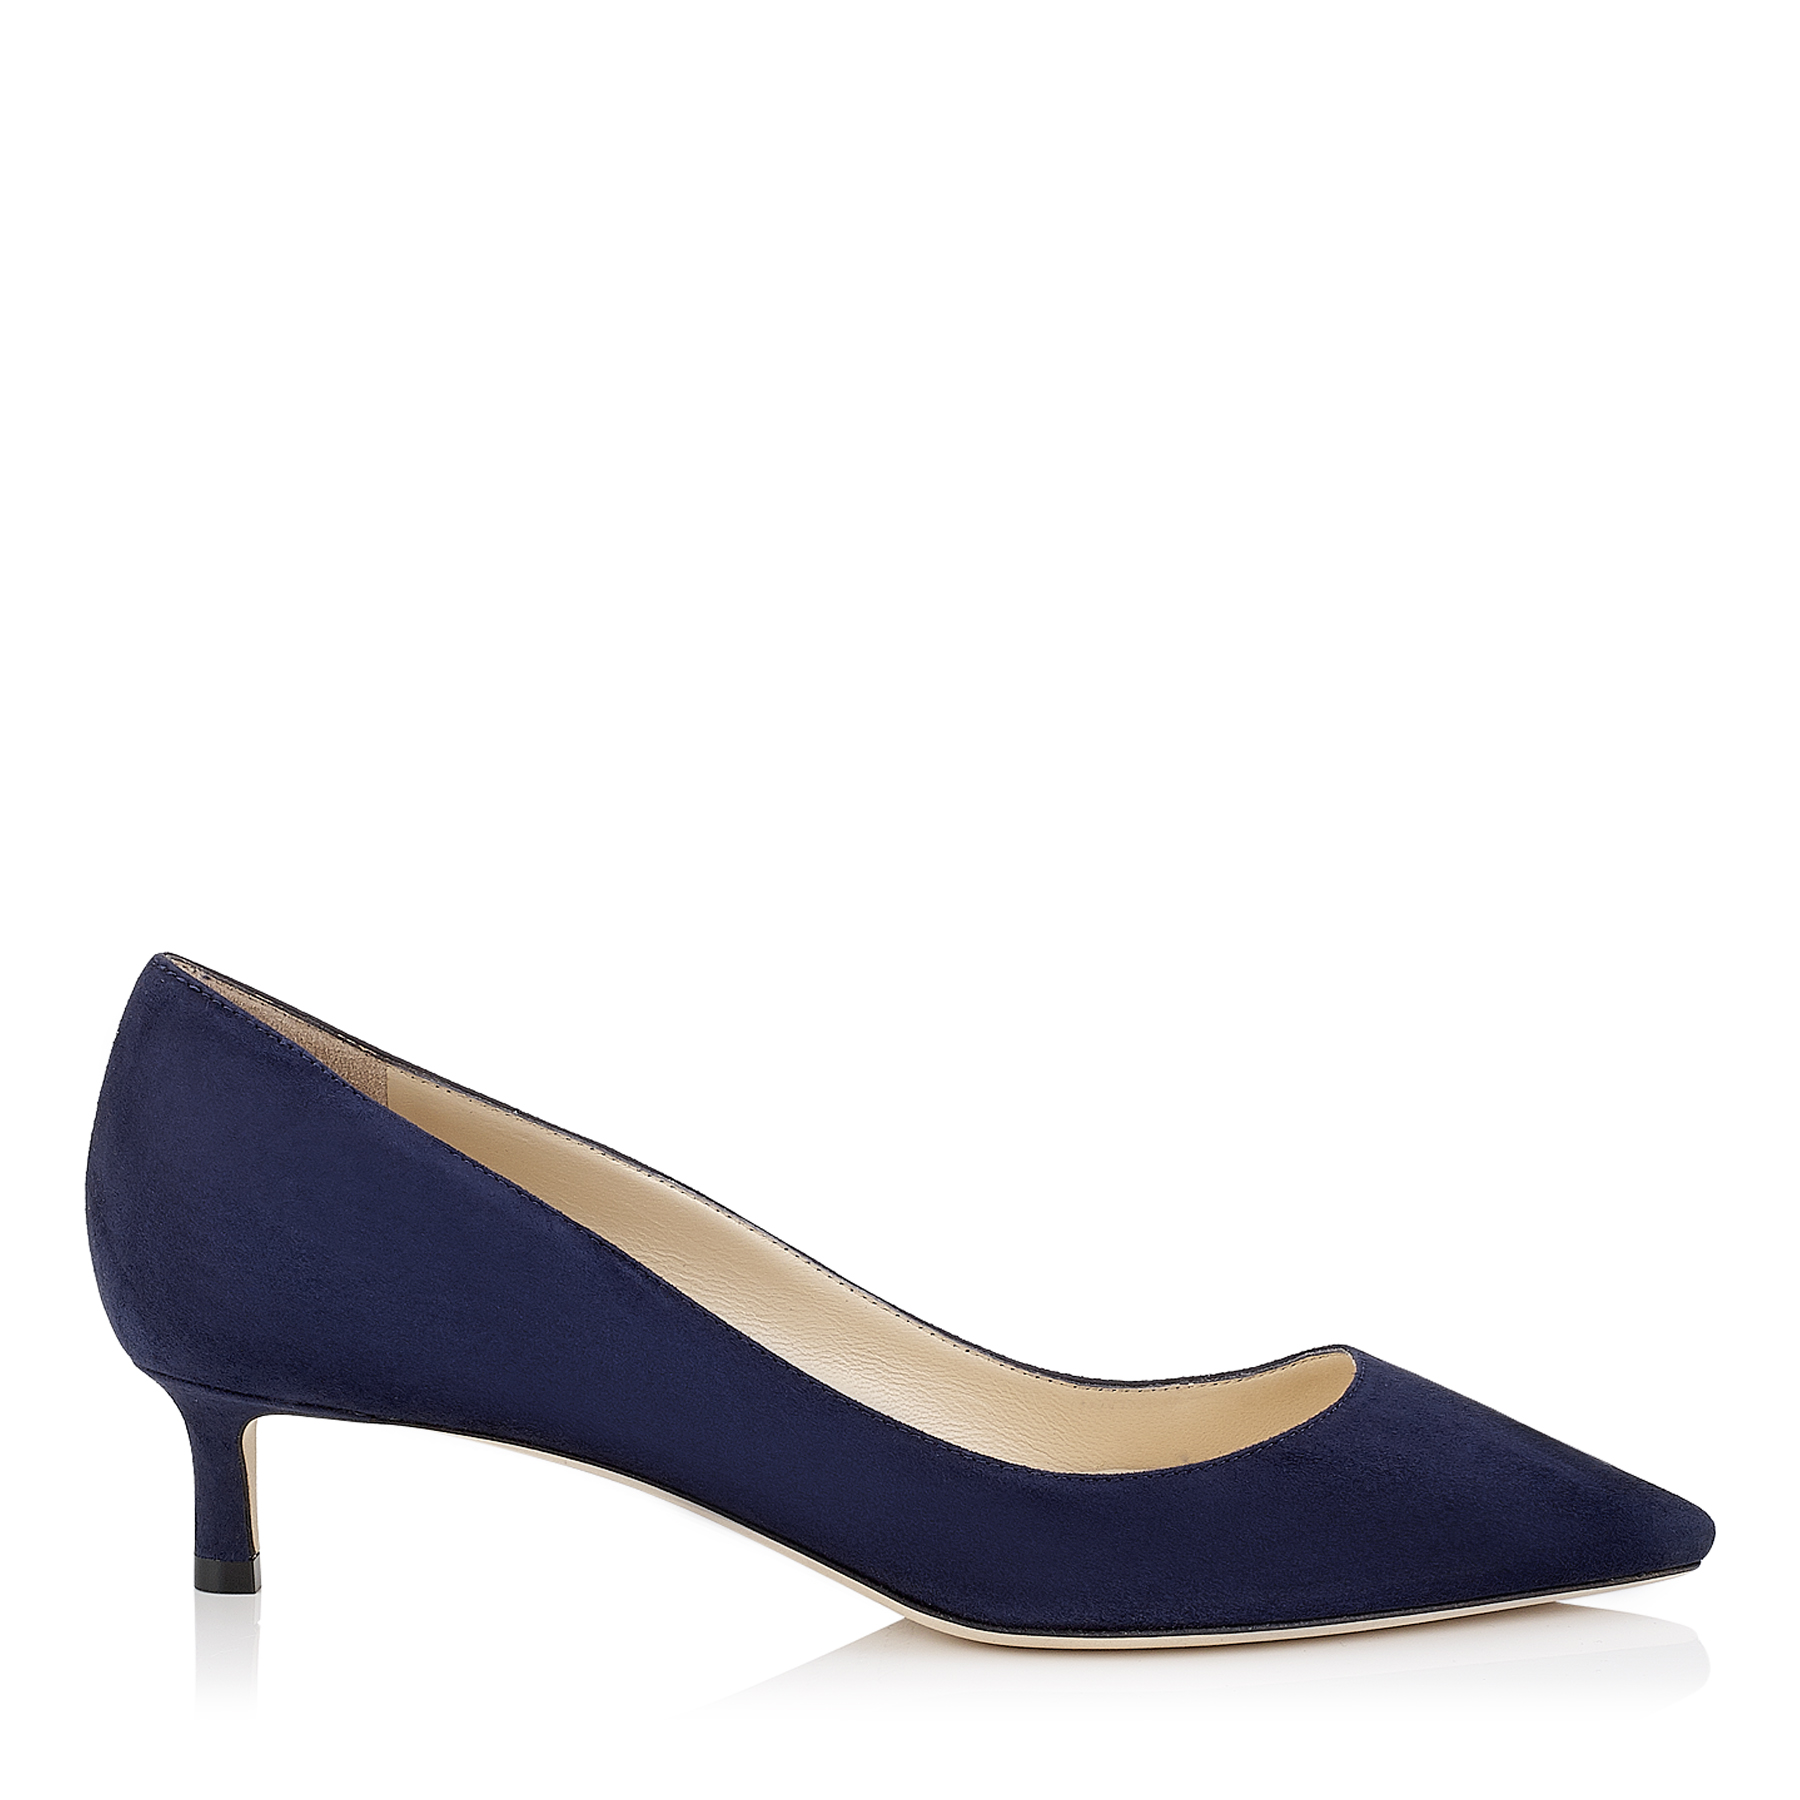 ROMY 40 Navy Suede Pointy Toe Pumps by Jimmy Choo